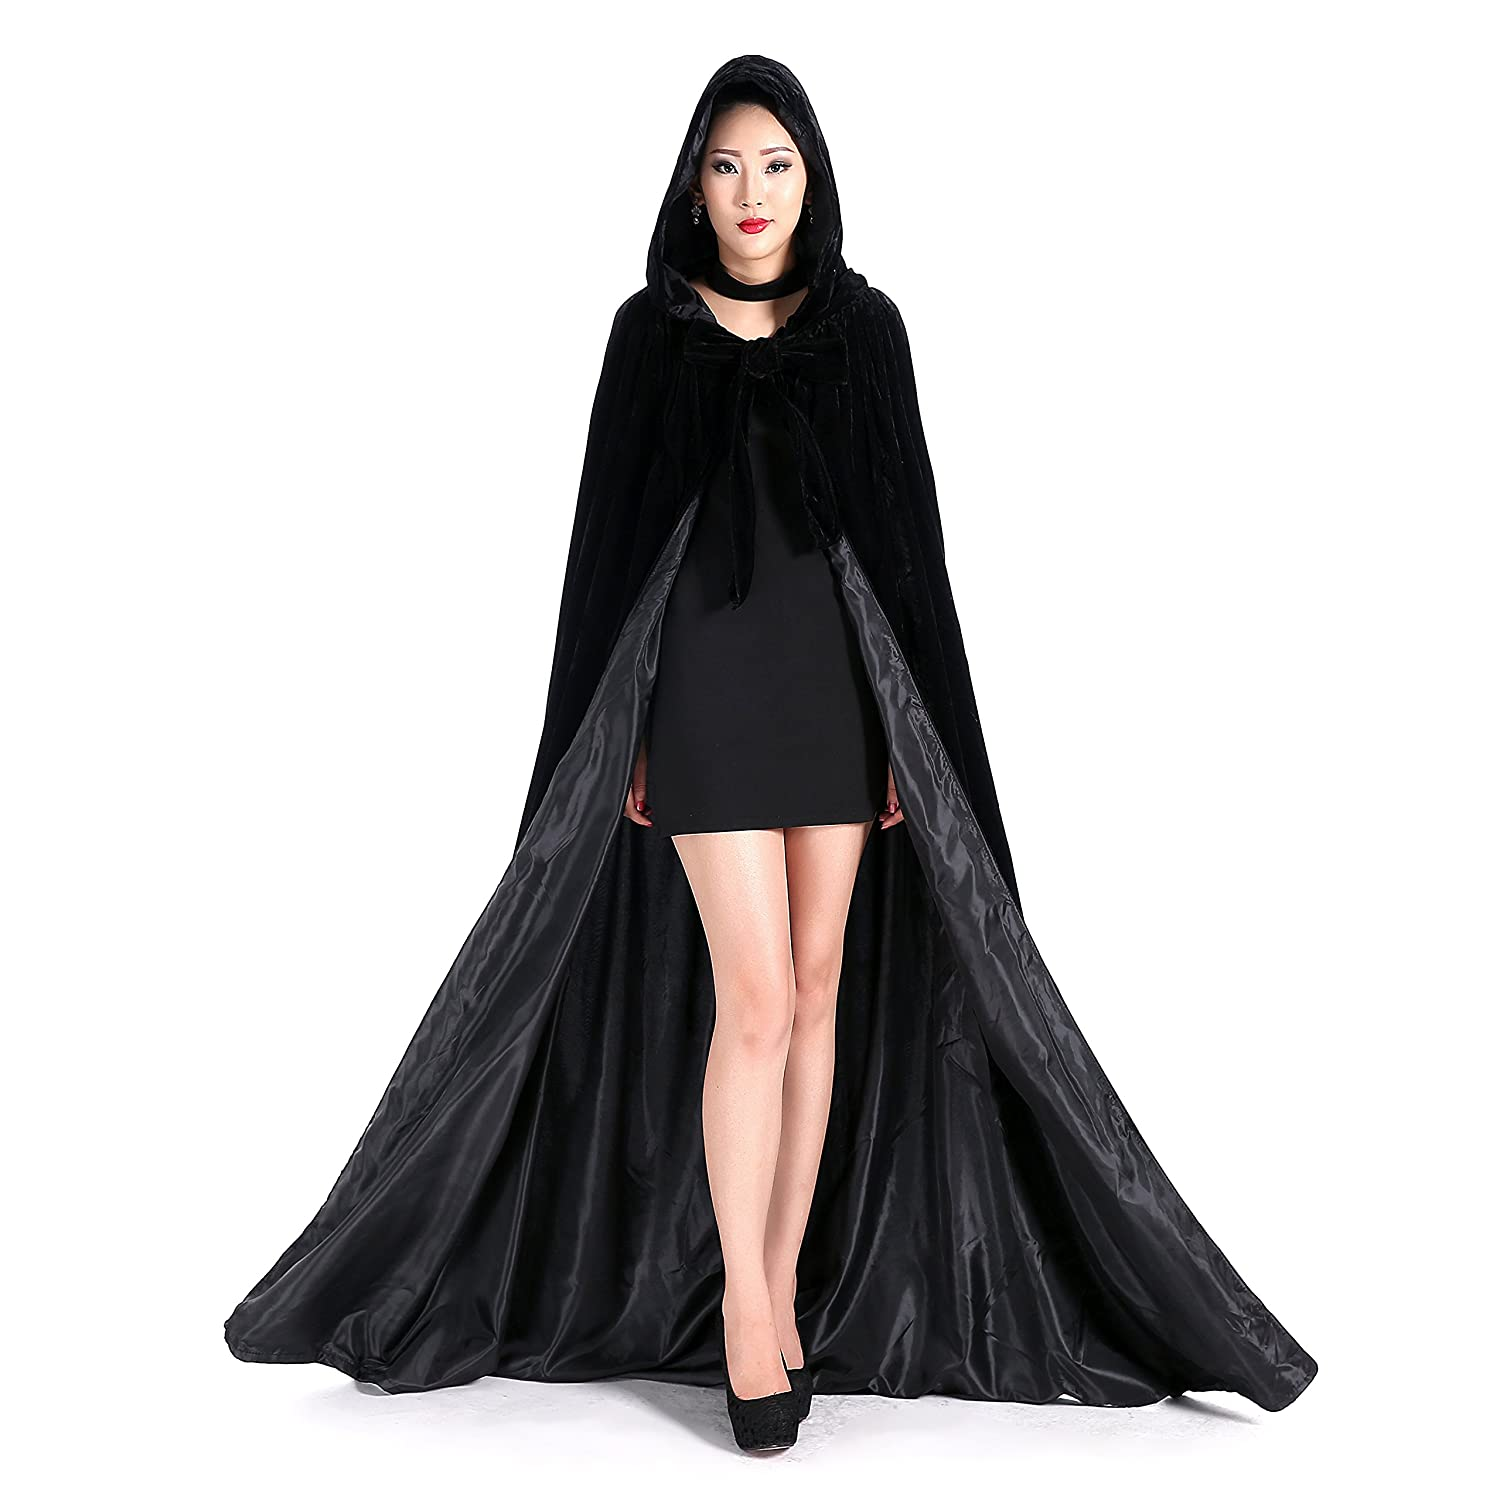 amazon com newdeve halloween hooded cloak medieval wedding cape